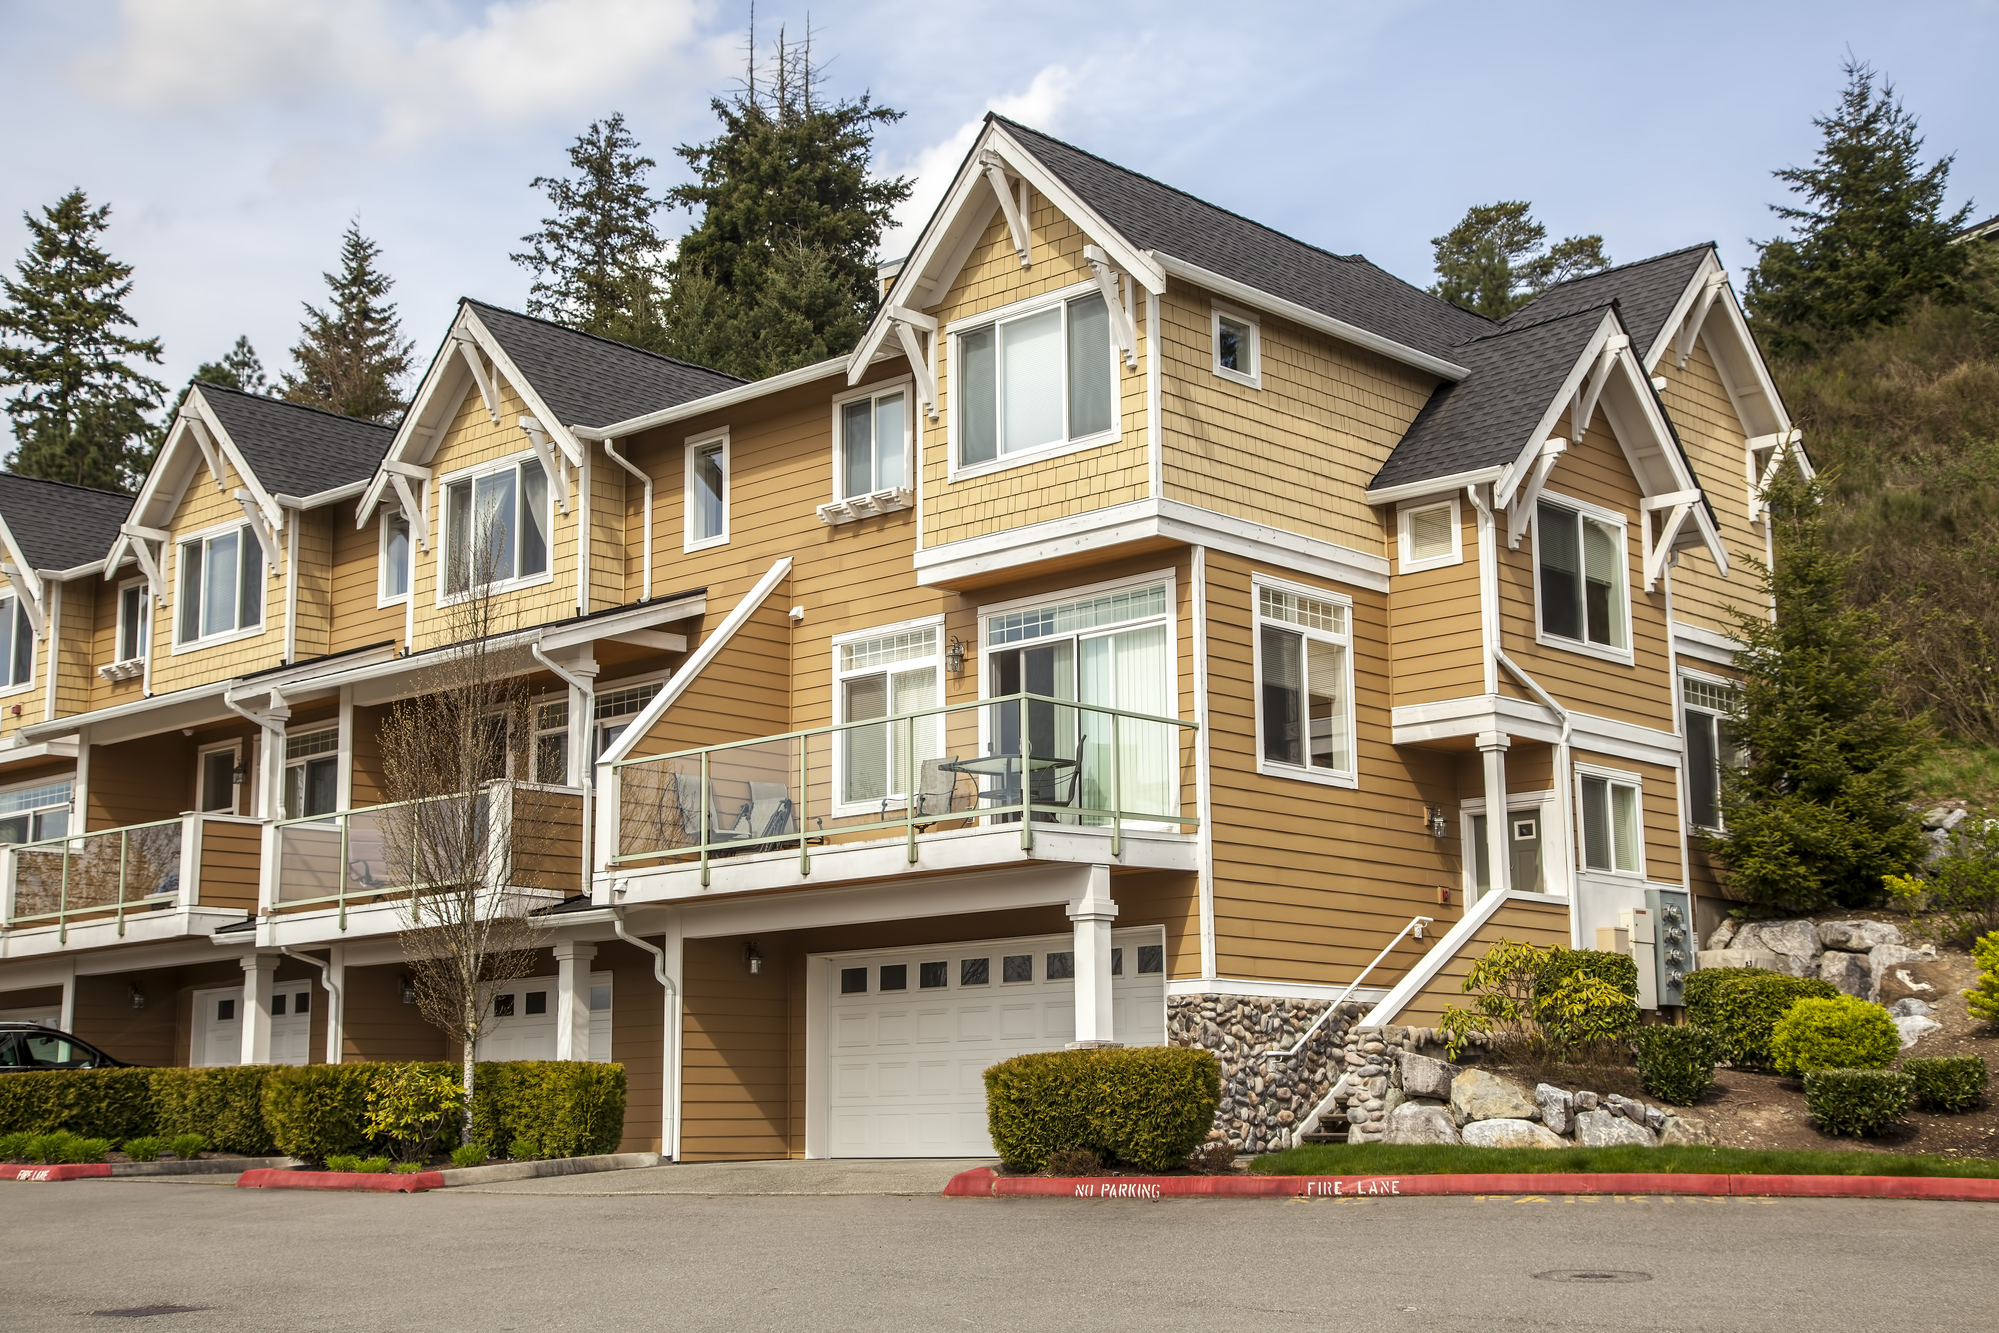 Do You Need Small Apartment Building Property Management? Here's What Landlords Need to Know